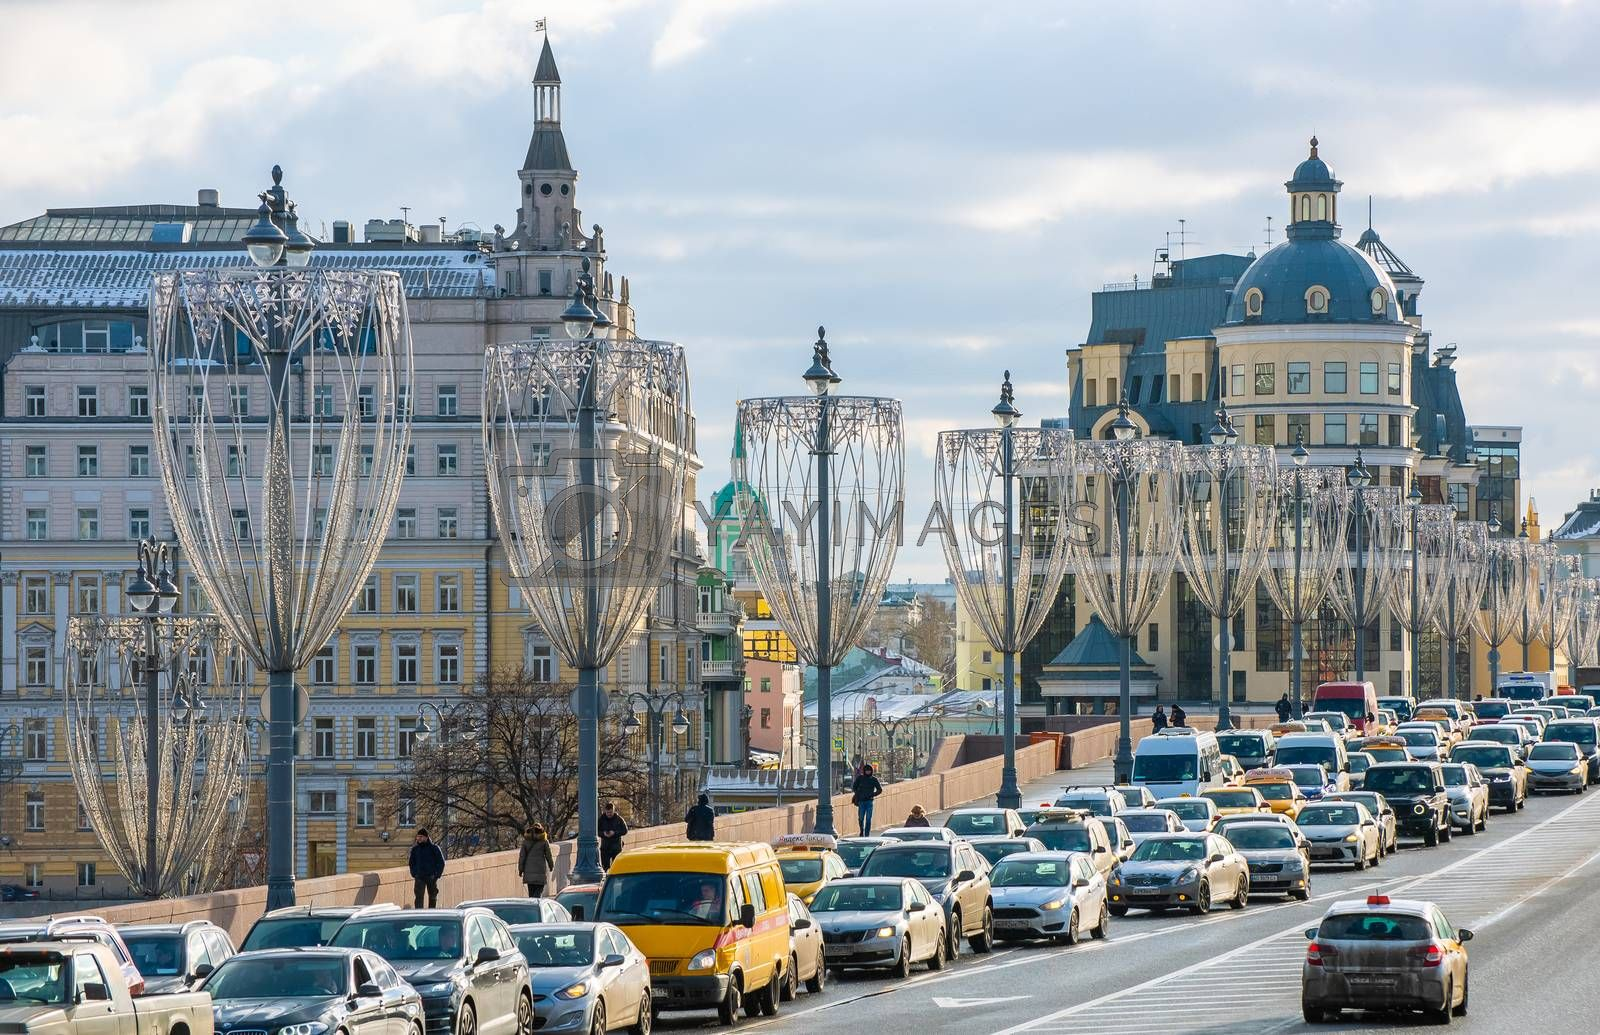 February 5, 2020 Moscow, Russia, Traffic jam on the Bolshoy Moskvoretsky bridge in Moscow.